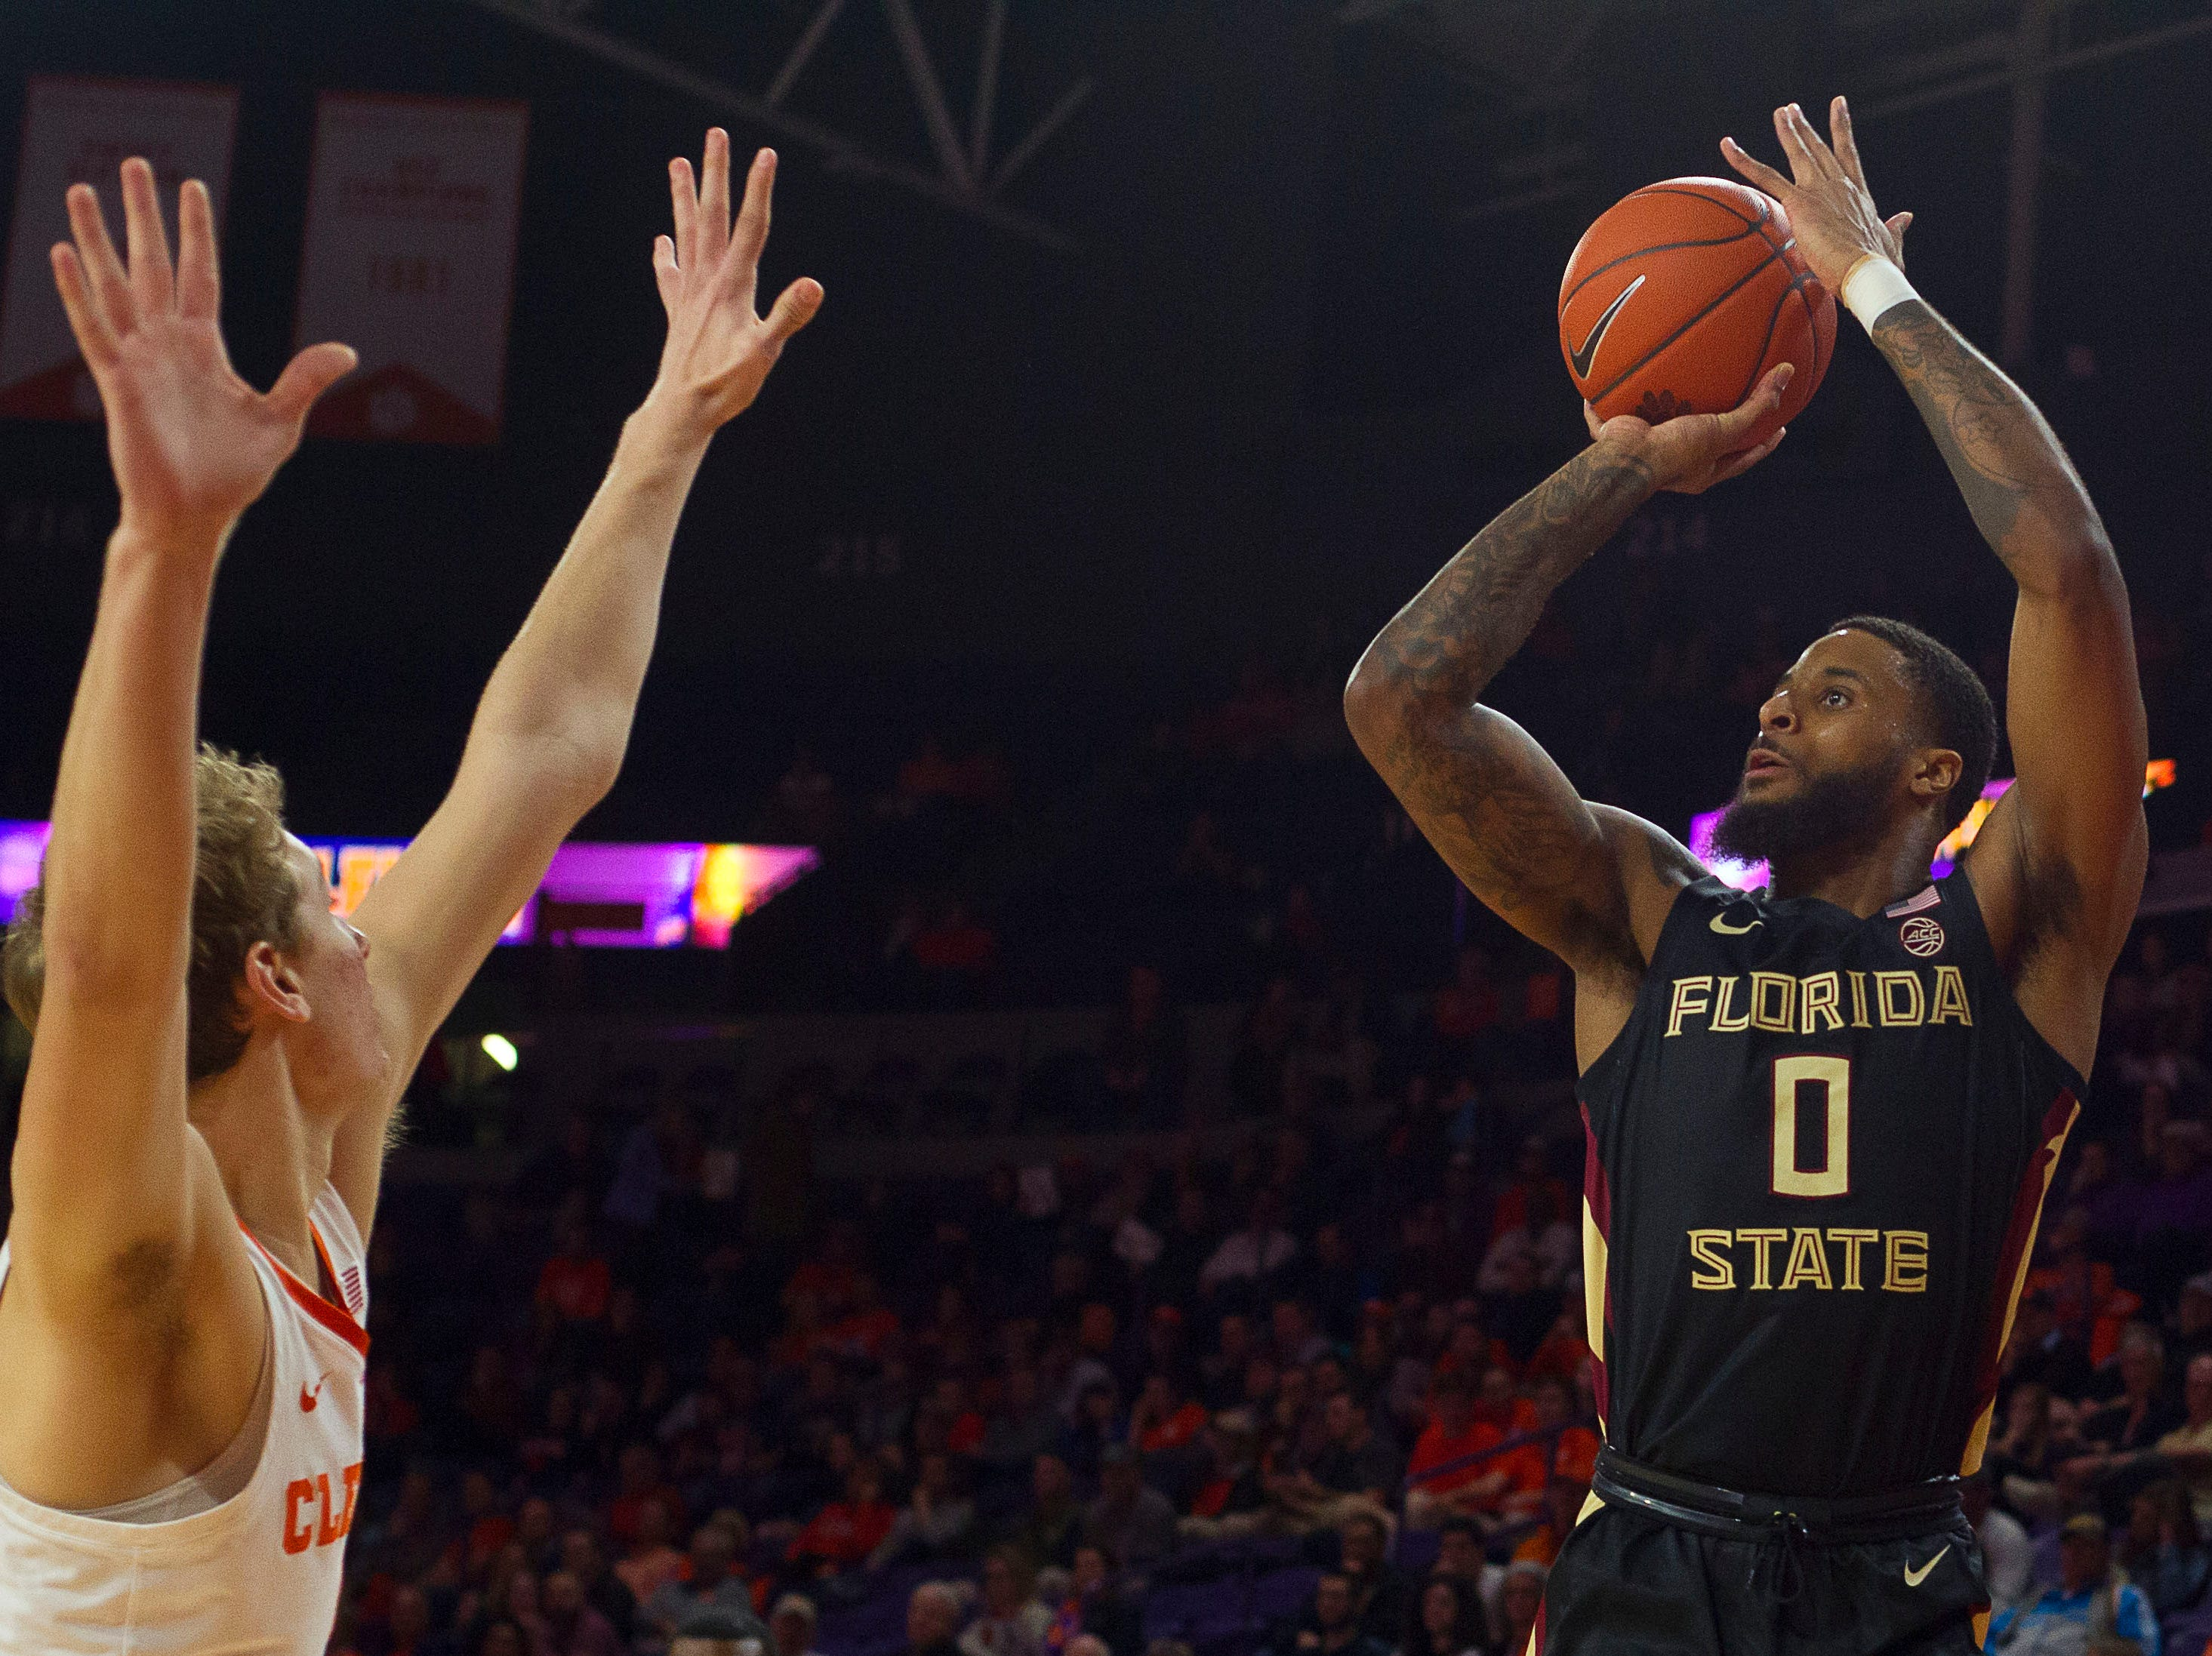 Feb 19, 2019; Clemson, SC, USA; Florida State Seminoles forward Phil Cofer (0) shoots the ball while being defended by Clemson Tigers forward Hunter Tyson (5) during the first half at Littlejohn Coliseum. Mandatory Credit: Joshua S. Kelly-USA TODAY Sports